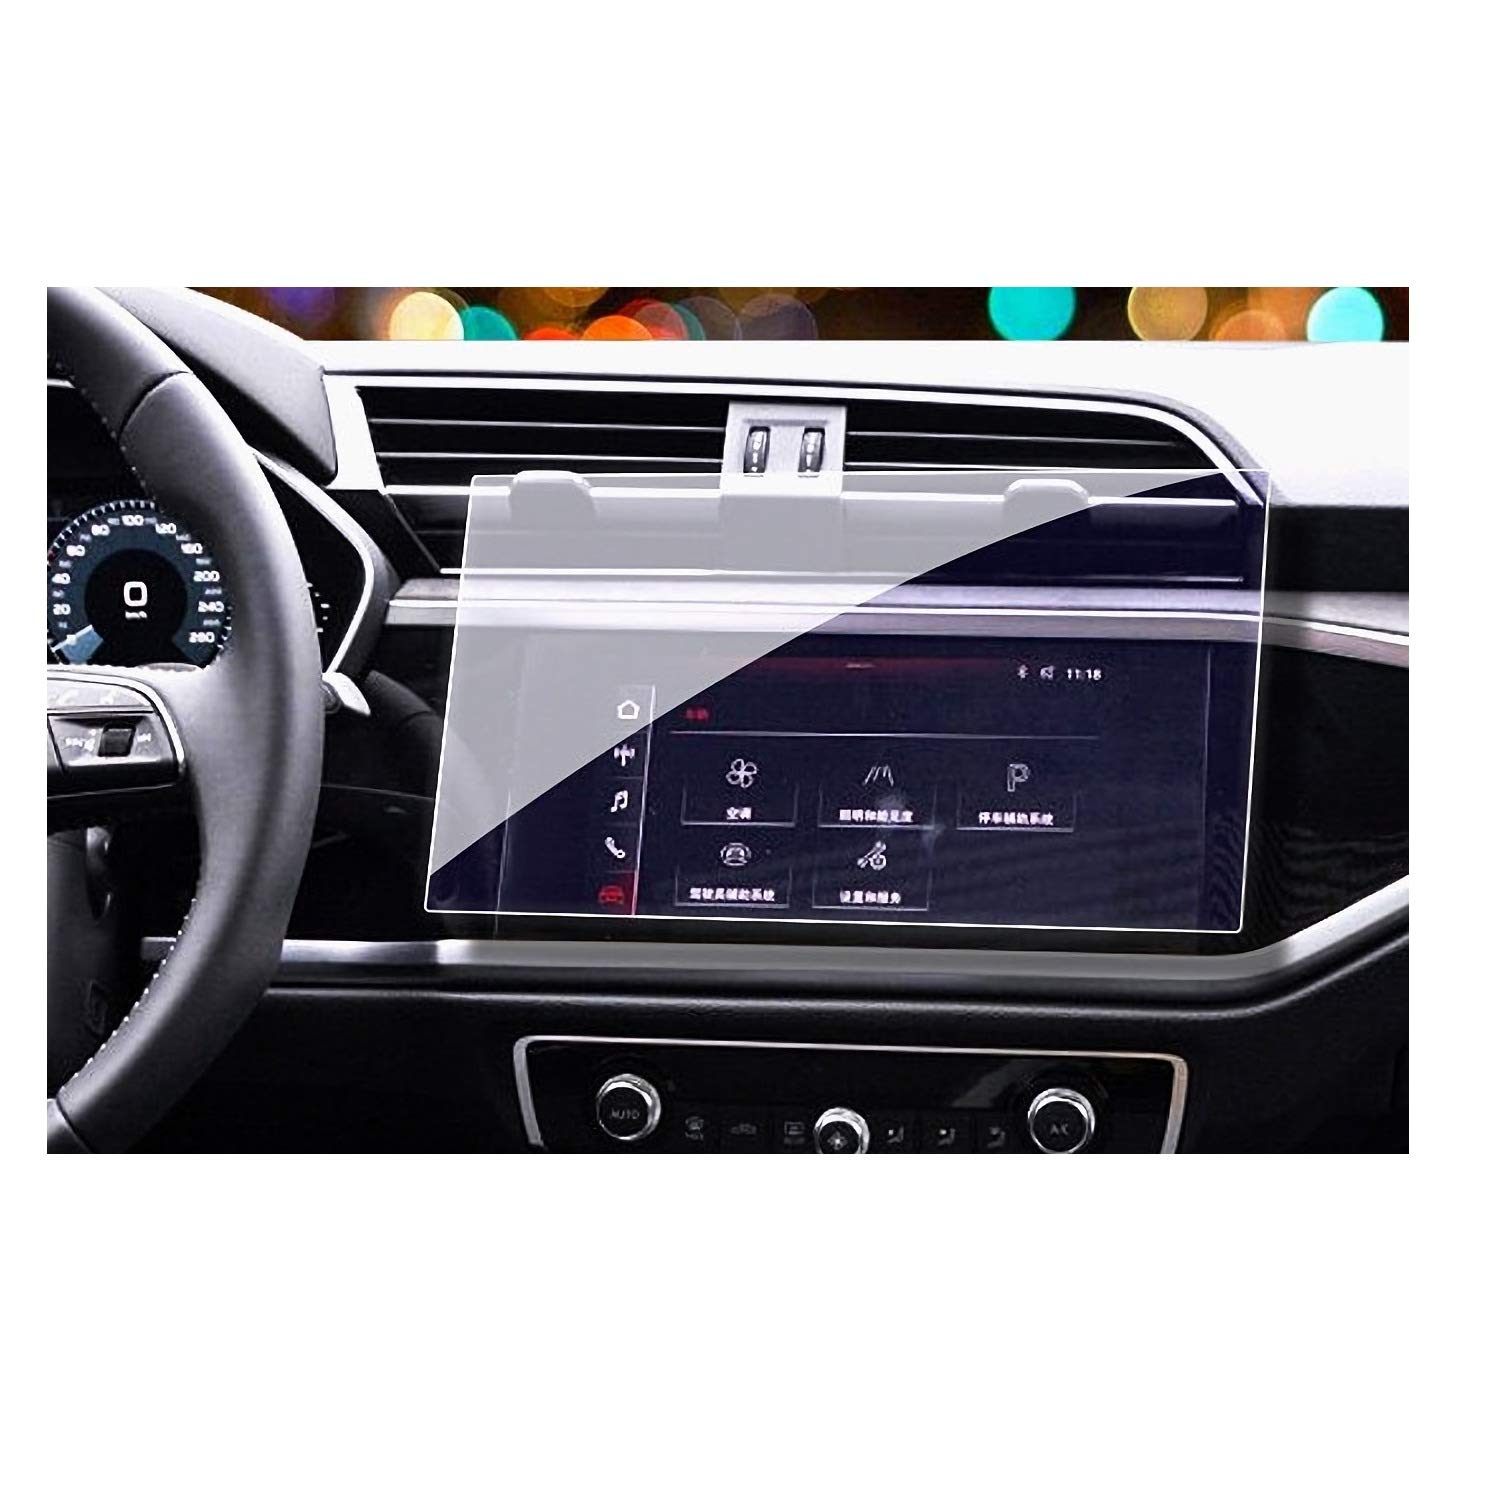 Audi Navigation Accessories Screen Protector Compatible with 2019 2020 Audi Q3 Touch Screen,Wonderfulhz,Anti Glare Scratch,Shock-Resistant